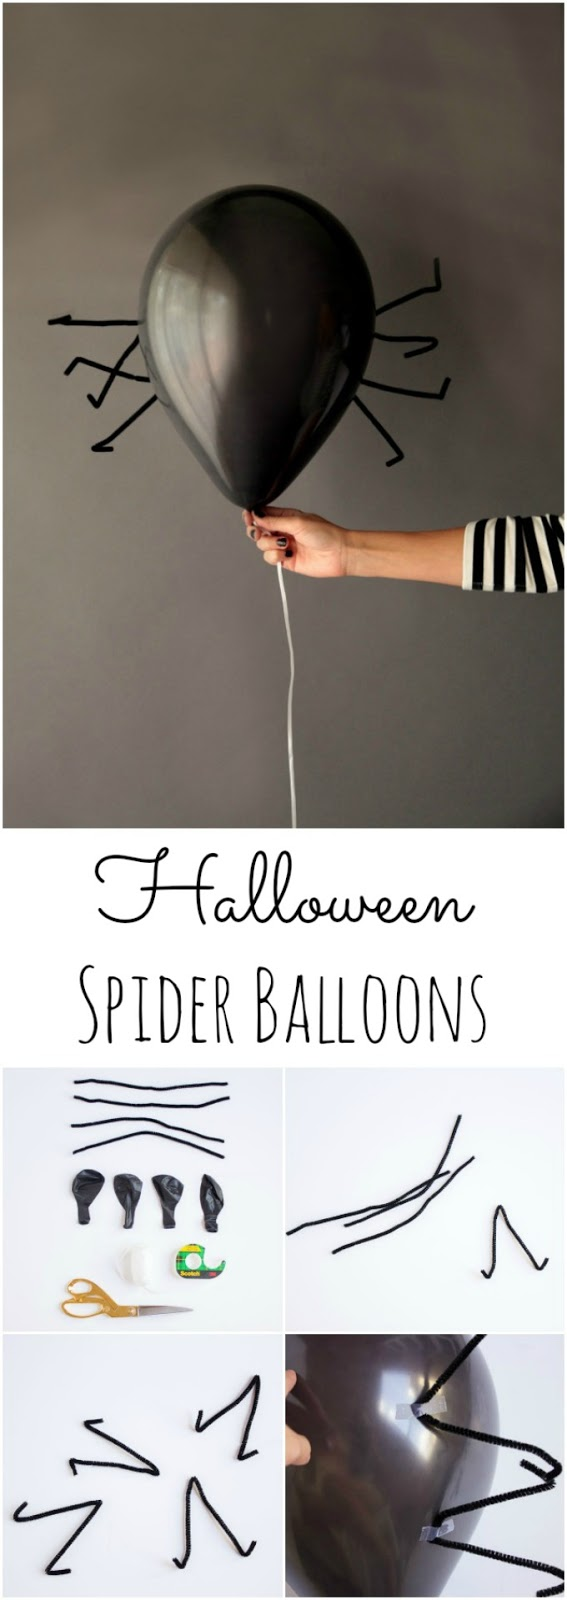 DIY Halloween spider balloons using pipe cleaners (via www.designimprovised.com)